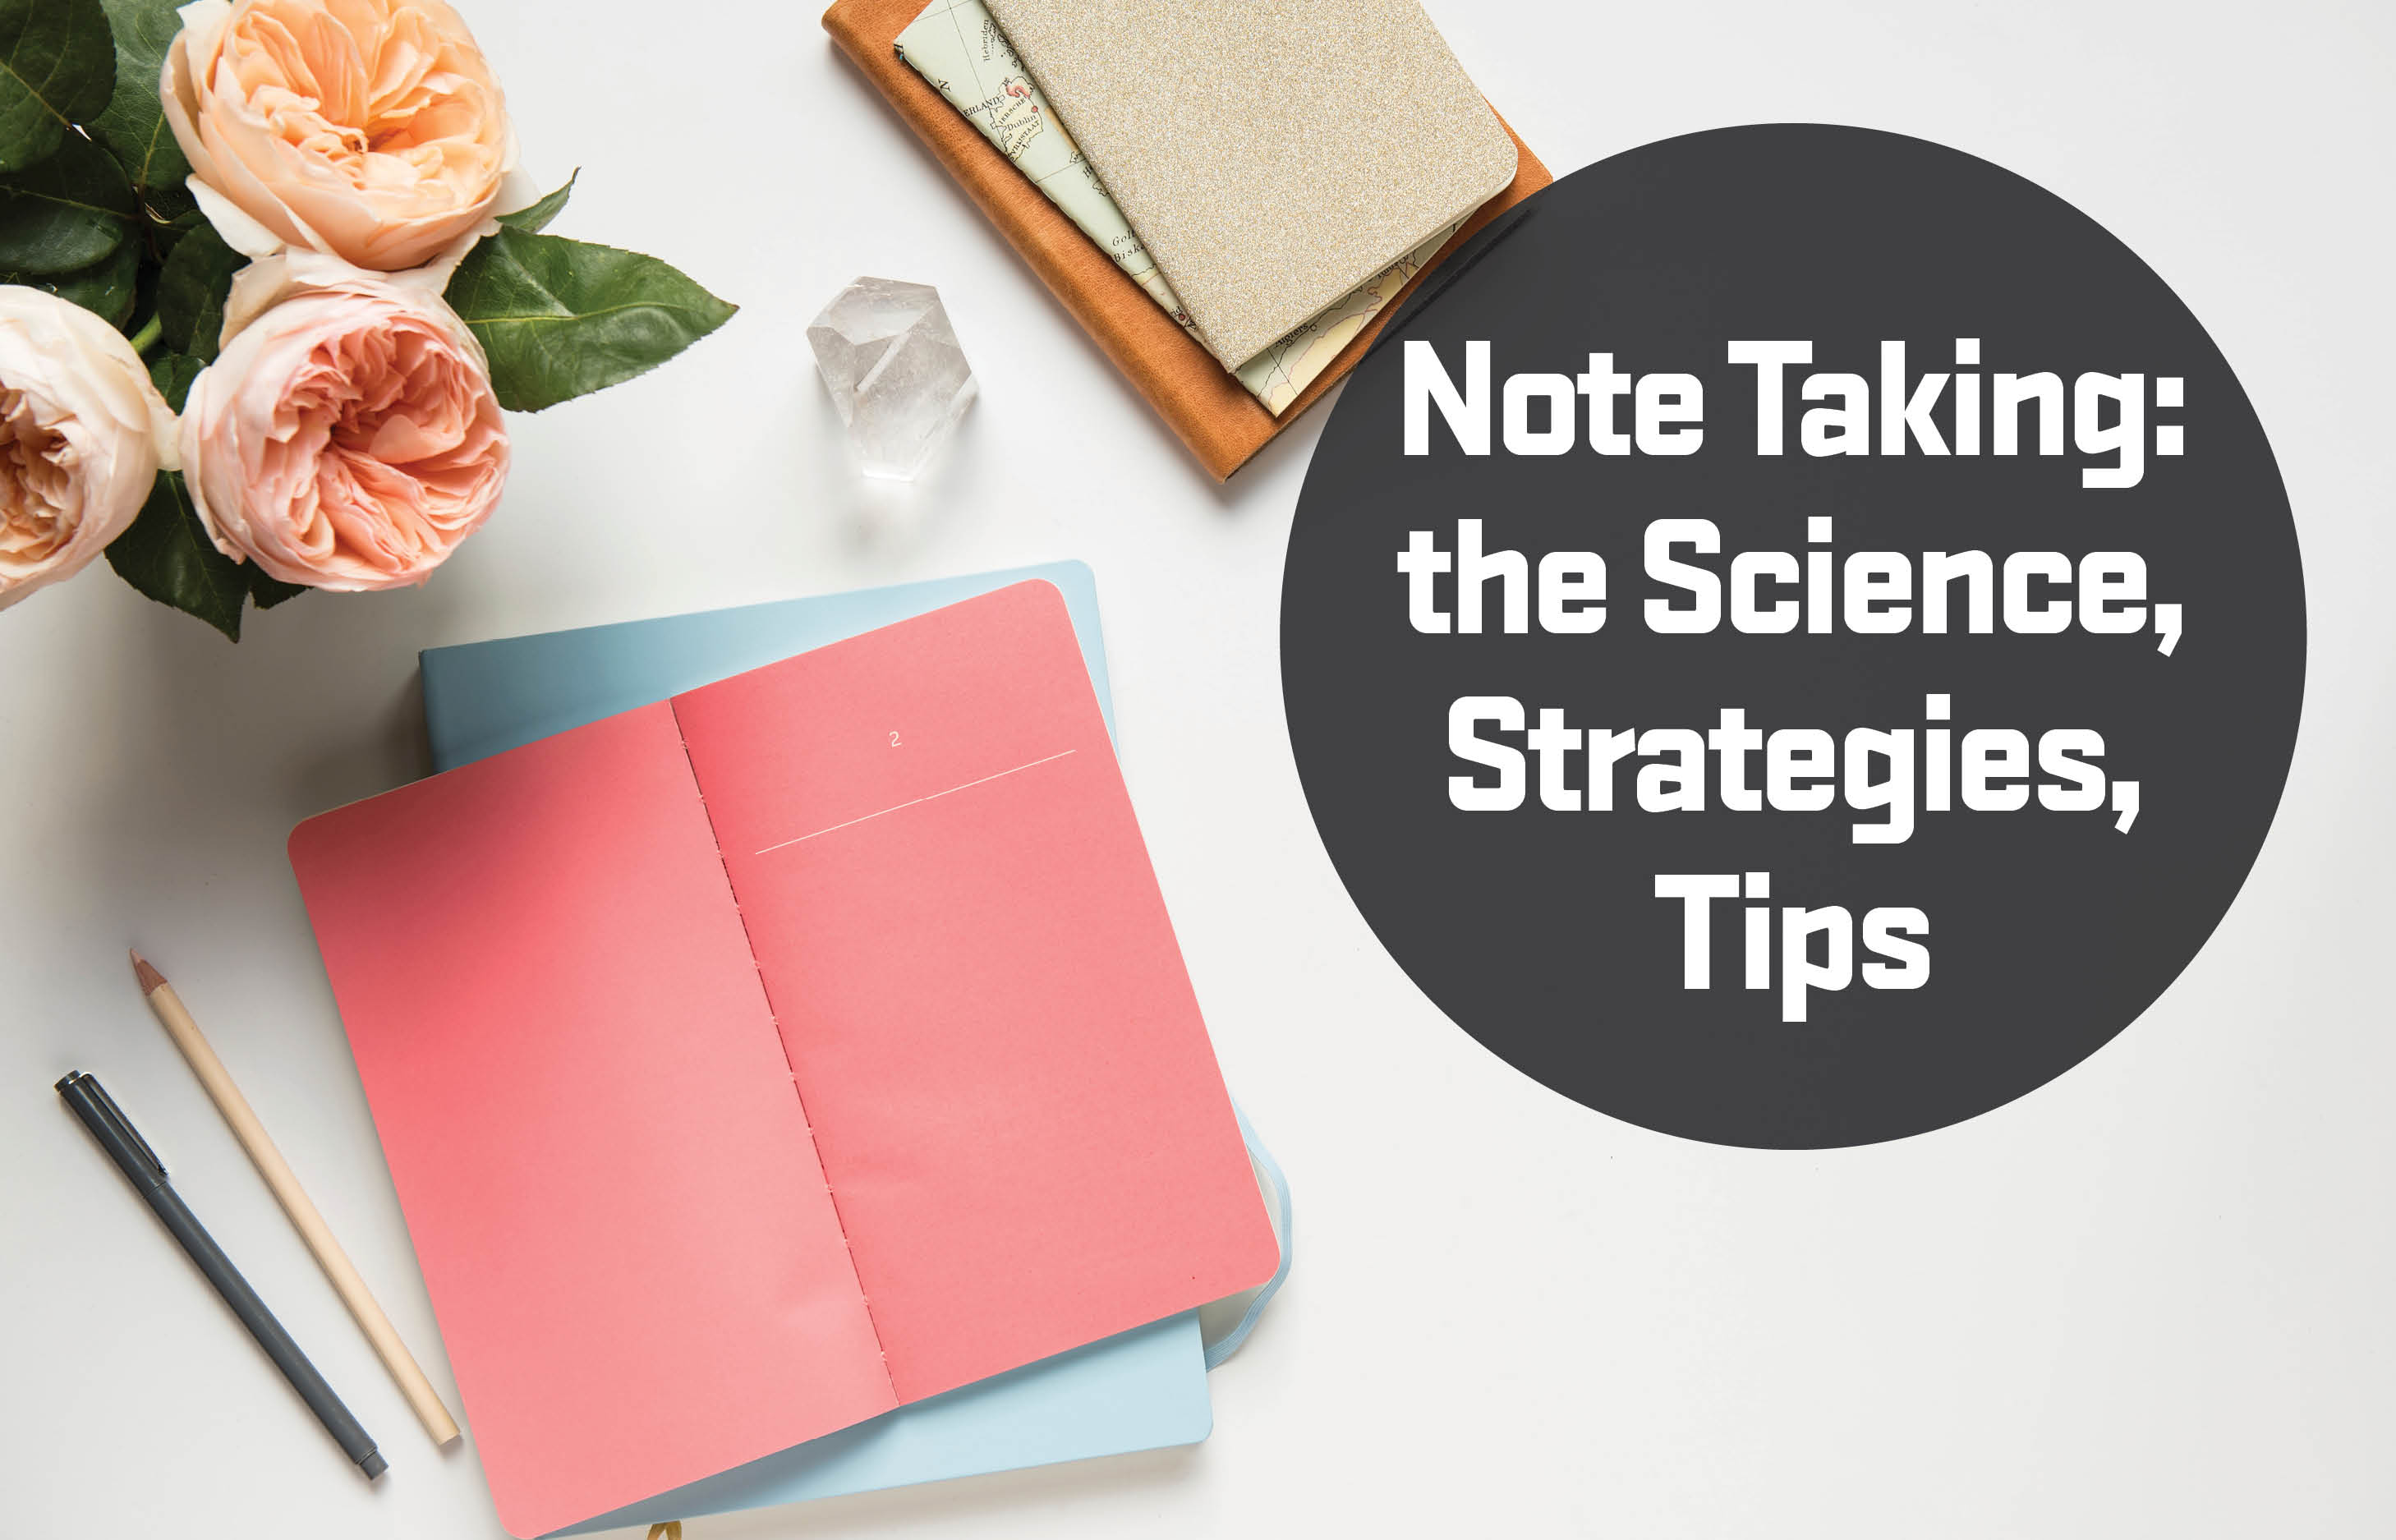 Note Taking: the science, strategies, tips